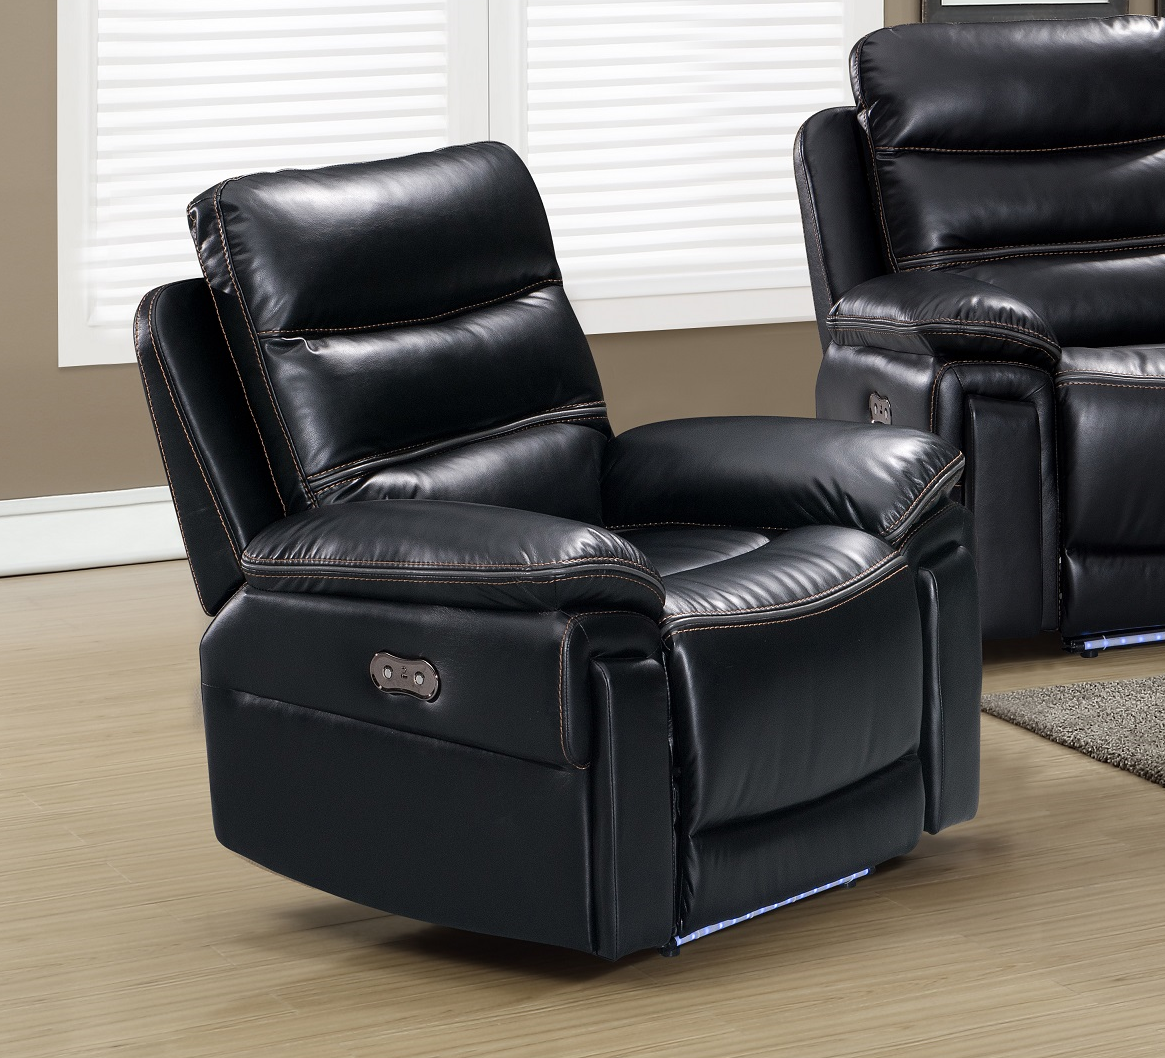 30850 Black Power Recliner Chair Pricepro Grocery And